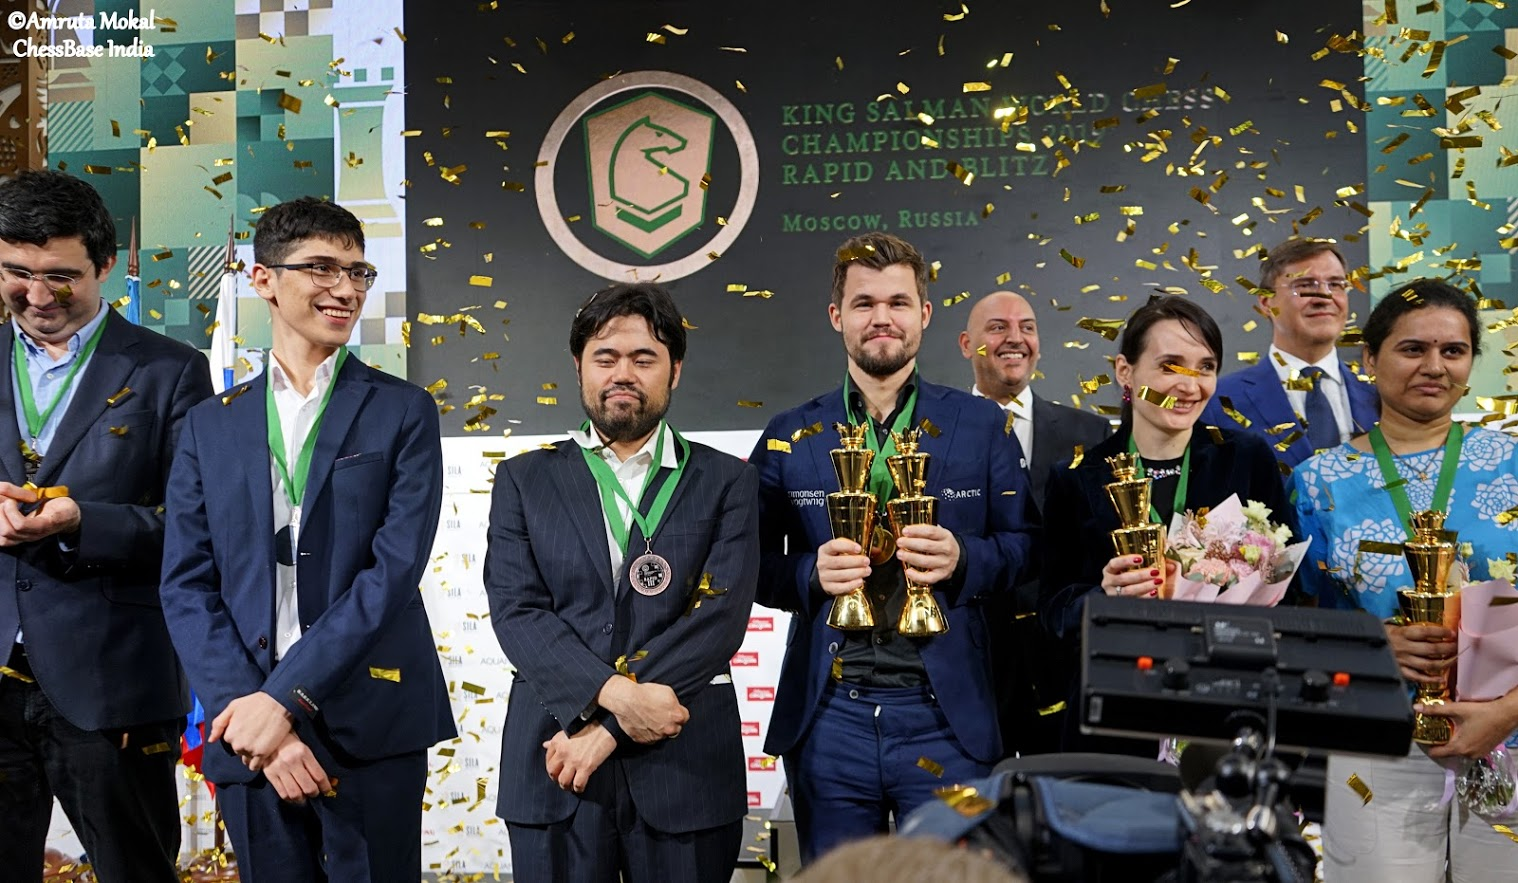 World Rapid and Blitz Chess Championships 2019